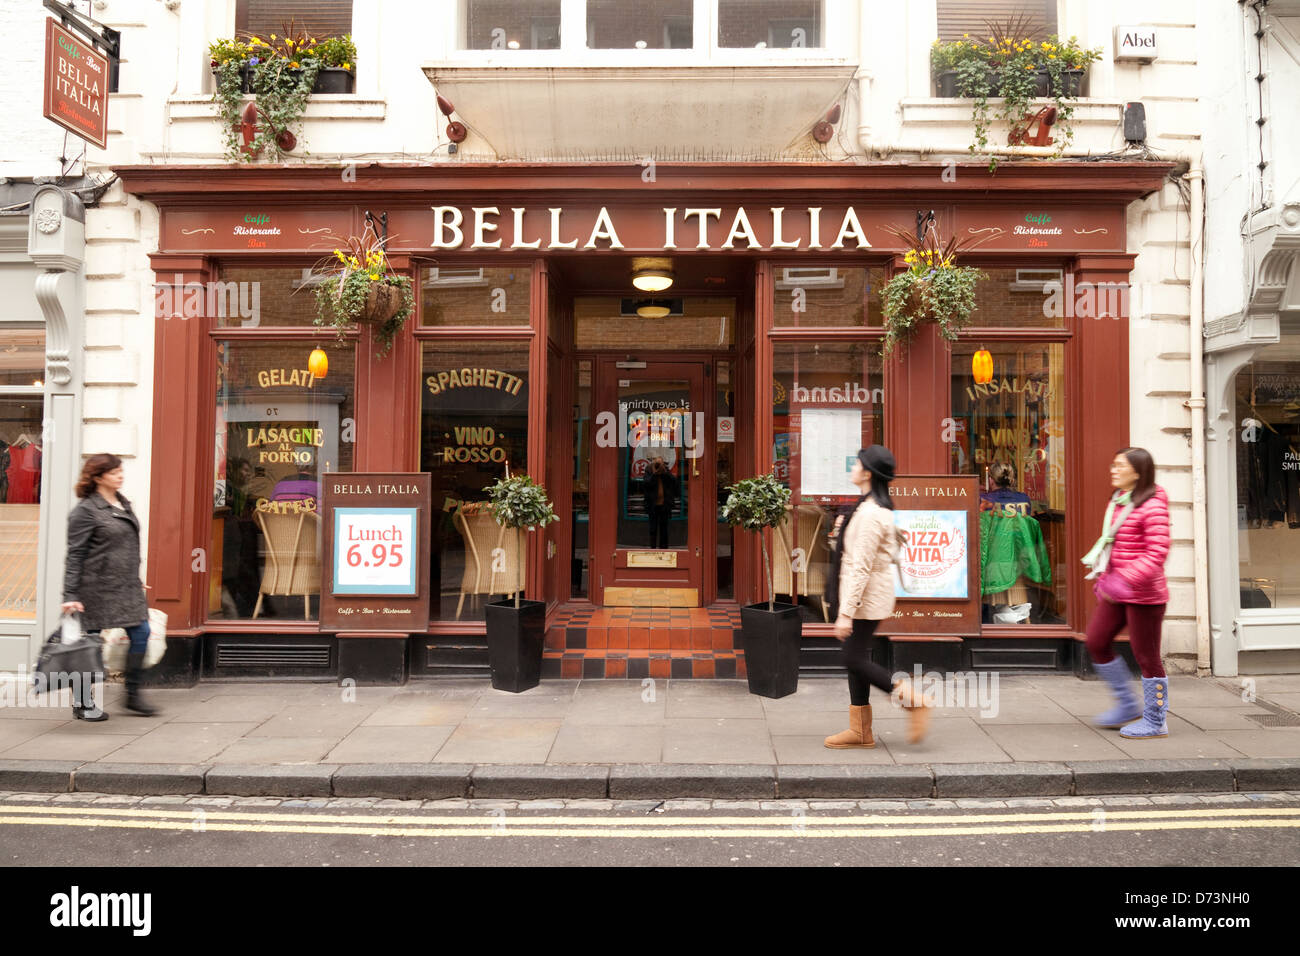 Italian Restaurant Exterior High Resolution Stock Photography And Images Alamy